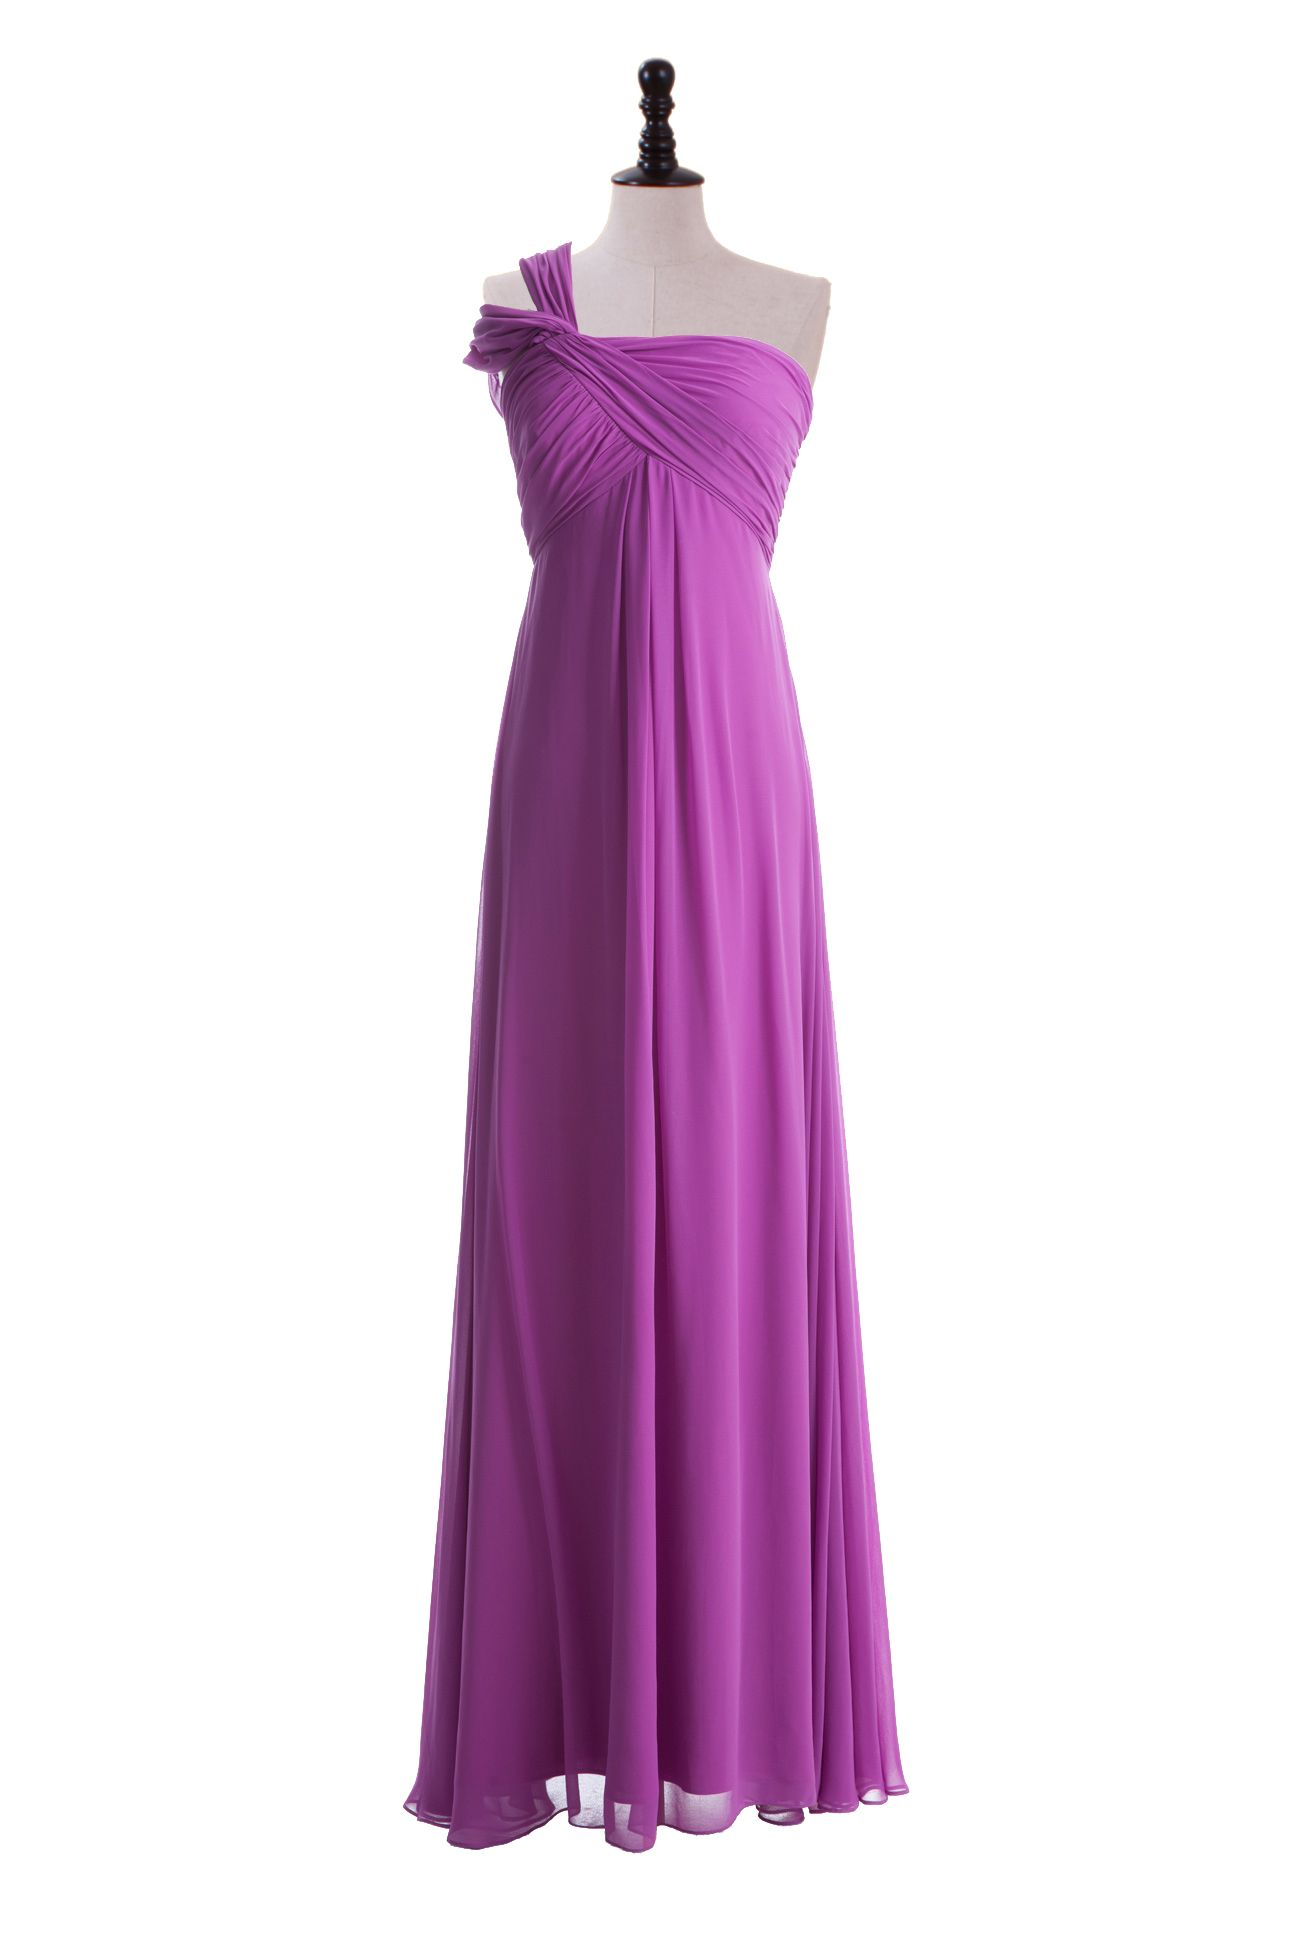 One Shoulder Empire Chiffon Dress, but in another color! turquesa ...